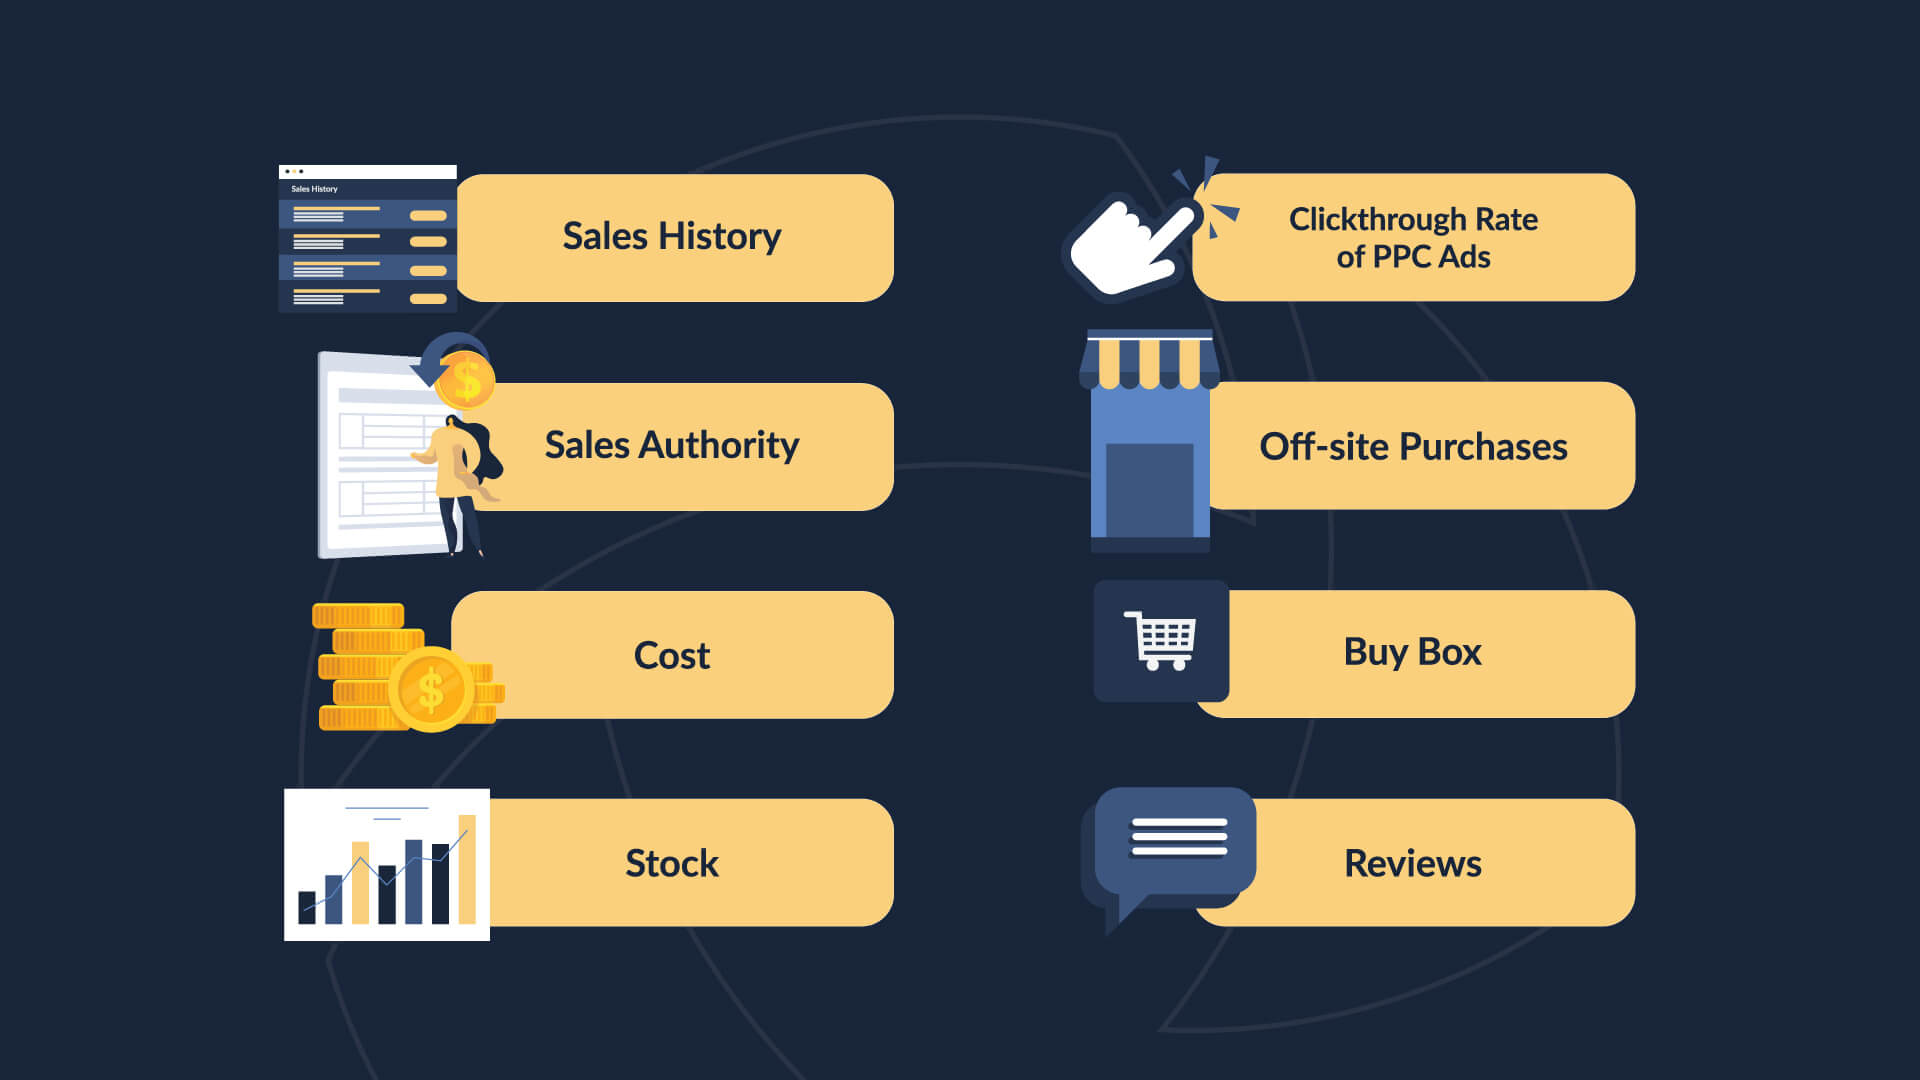 Elements that Amazon's search algorithm uses. Sales history, seller authority, cost, stock, clickthrough rate of PPC ads, off-site purchases, buy box, reviews.